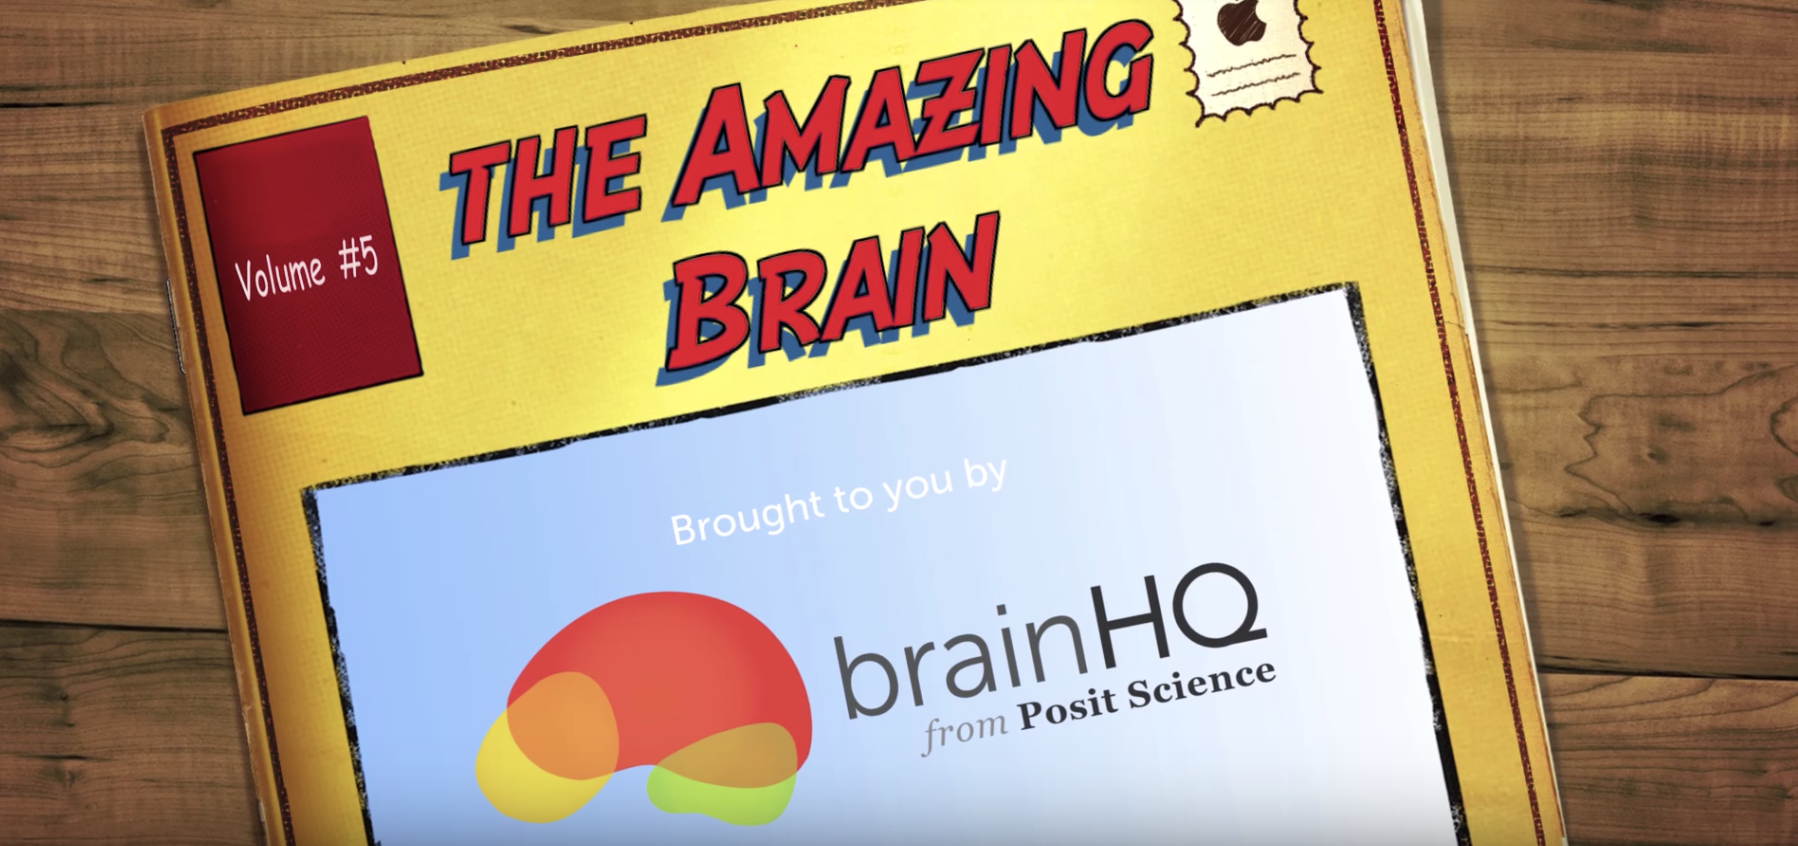 The Amazing Brain, Volume 5: Is Memory Loss an Inevitable Part of Aging?